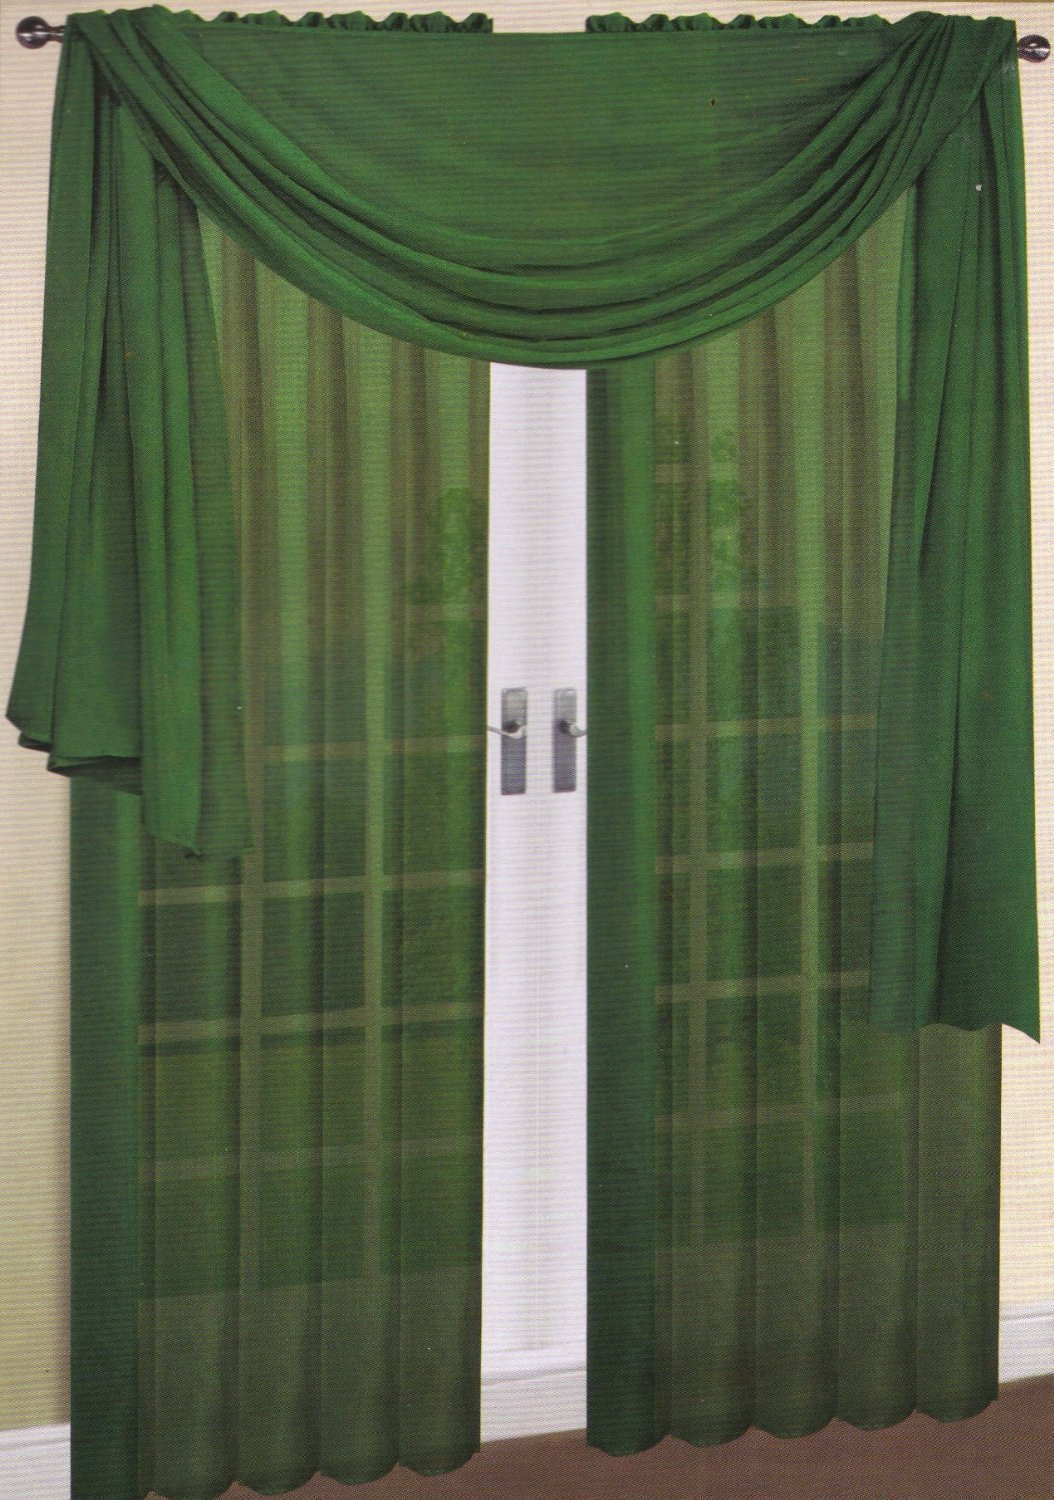 Amazon LuxuryDiscounts 2 Piece Solid Hunter Green Elegant Sheer Curtains Fully Stitched Panels Window Treatment Drape 55 X 84 Home Kitchen